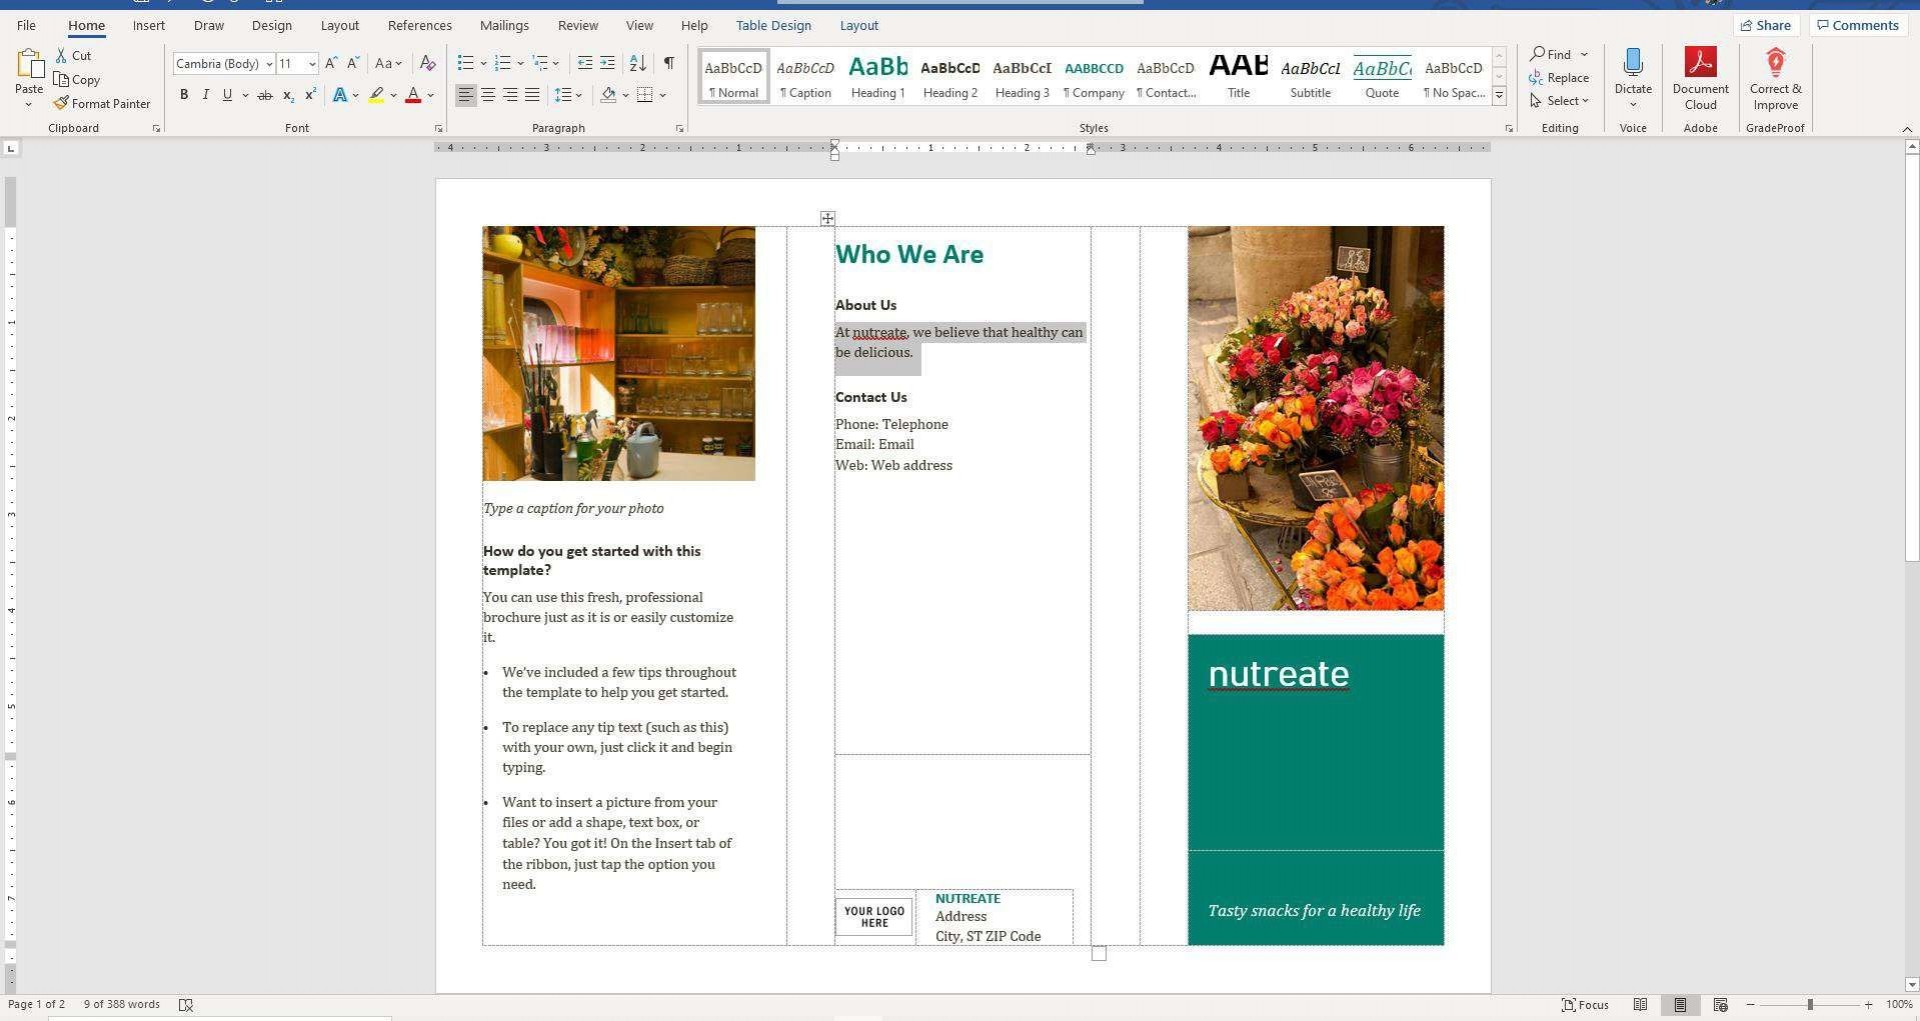 005 Incredible Microsoft Word Brochure Template Highest Quality  M Free Download Design 2007 A41920